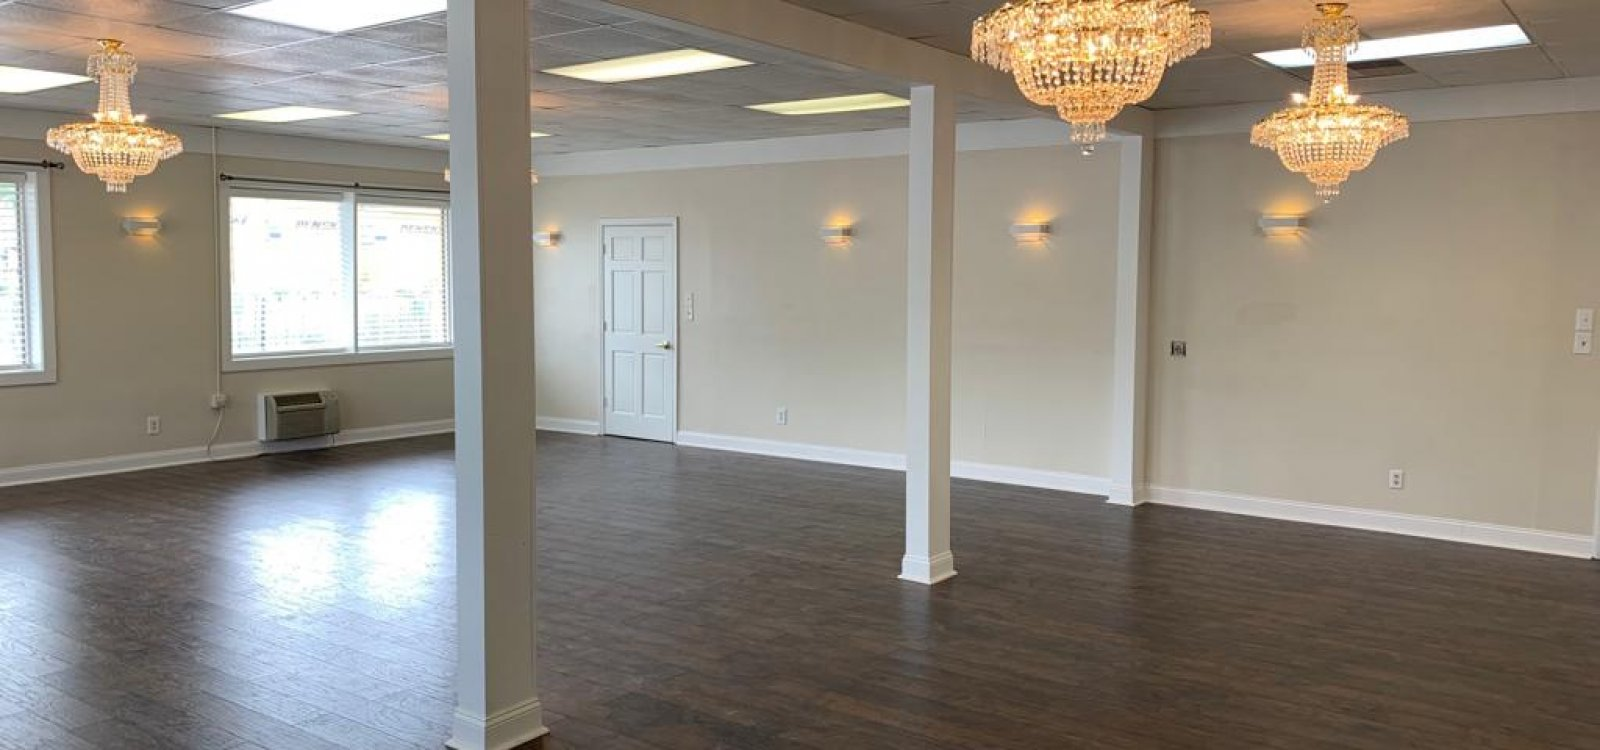 Second Event Hall Opens in Macon!